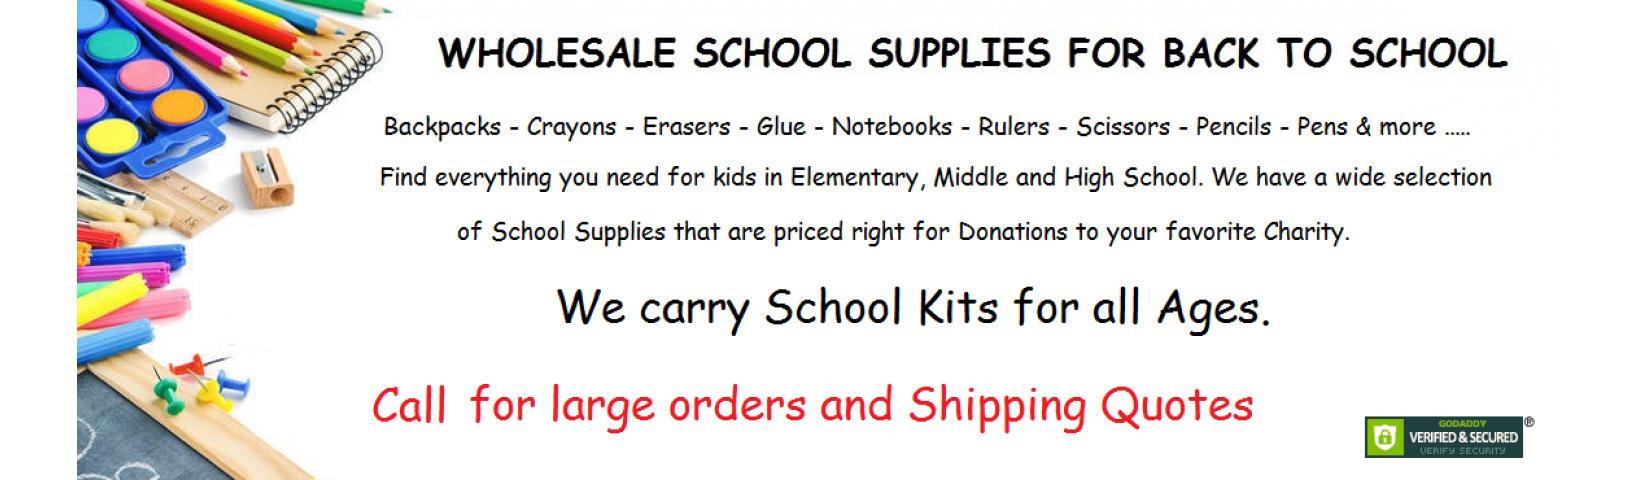 wholesale school supplies 2018